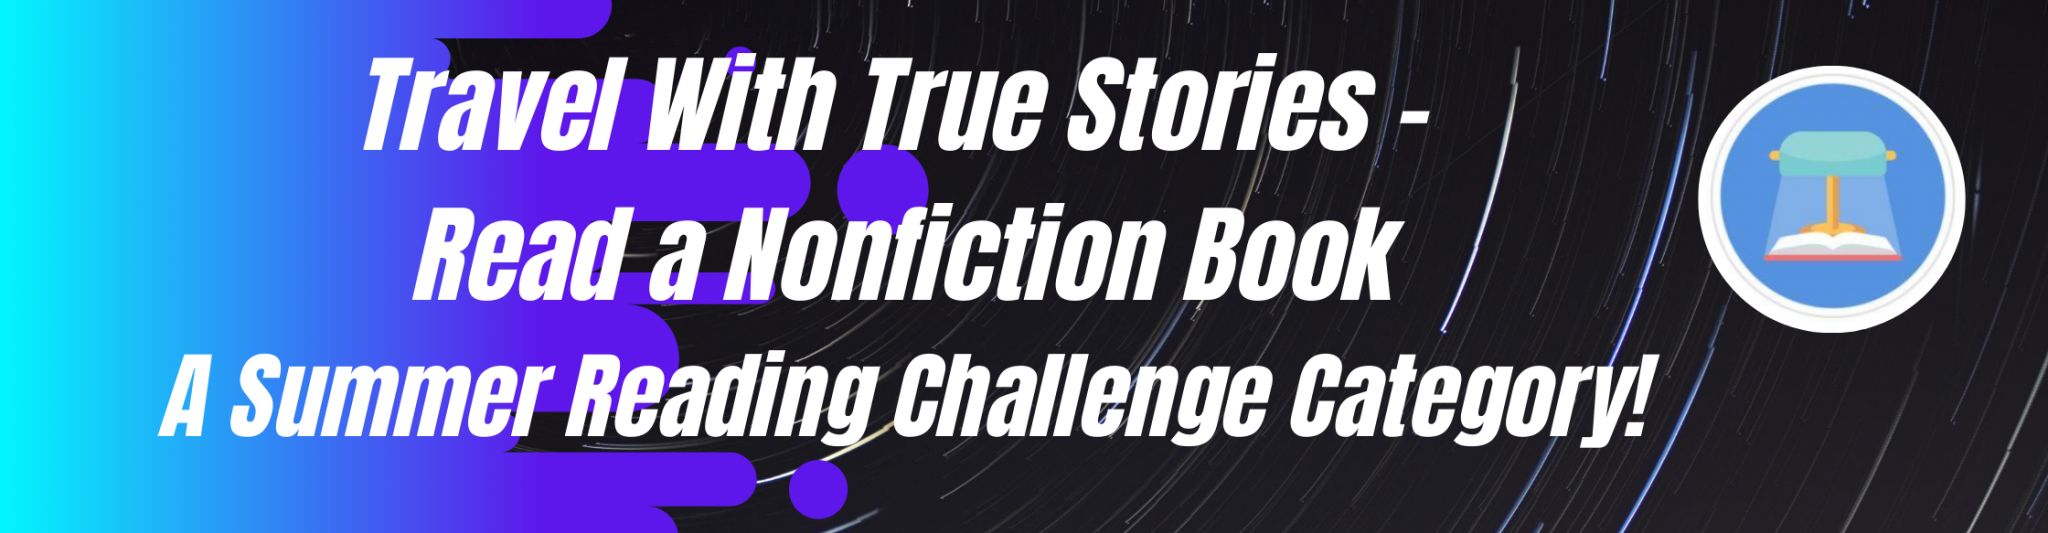 travel with true stories - read a nonfiction book, a summer reading challenge category